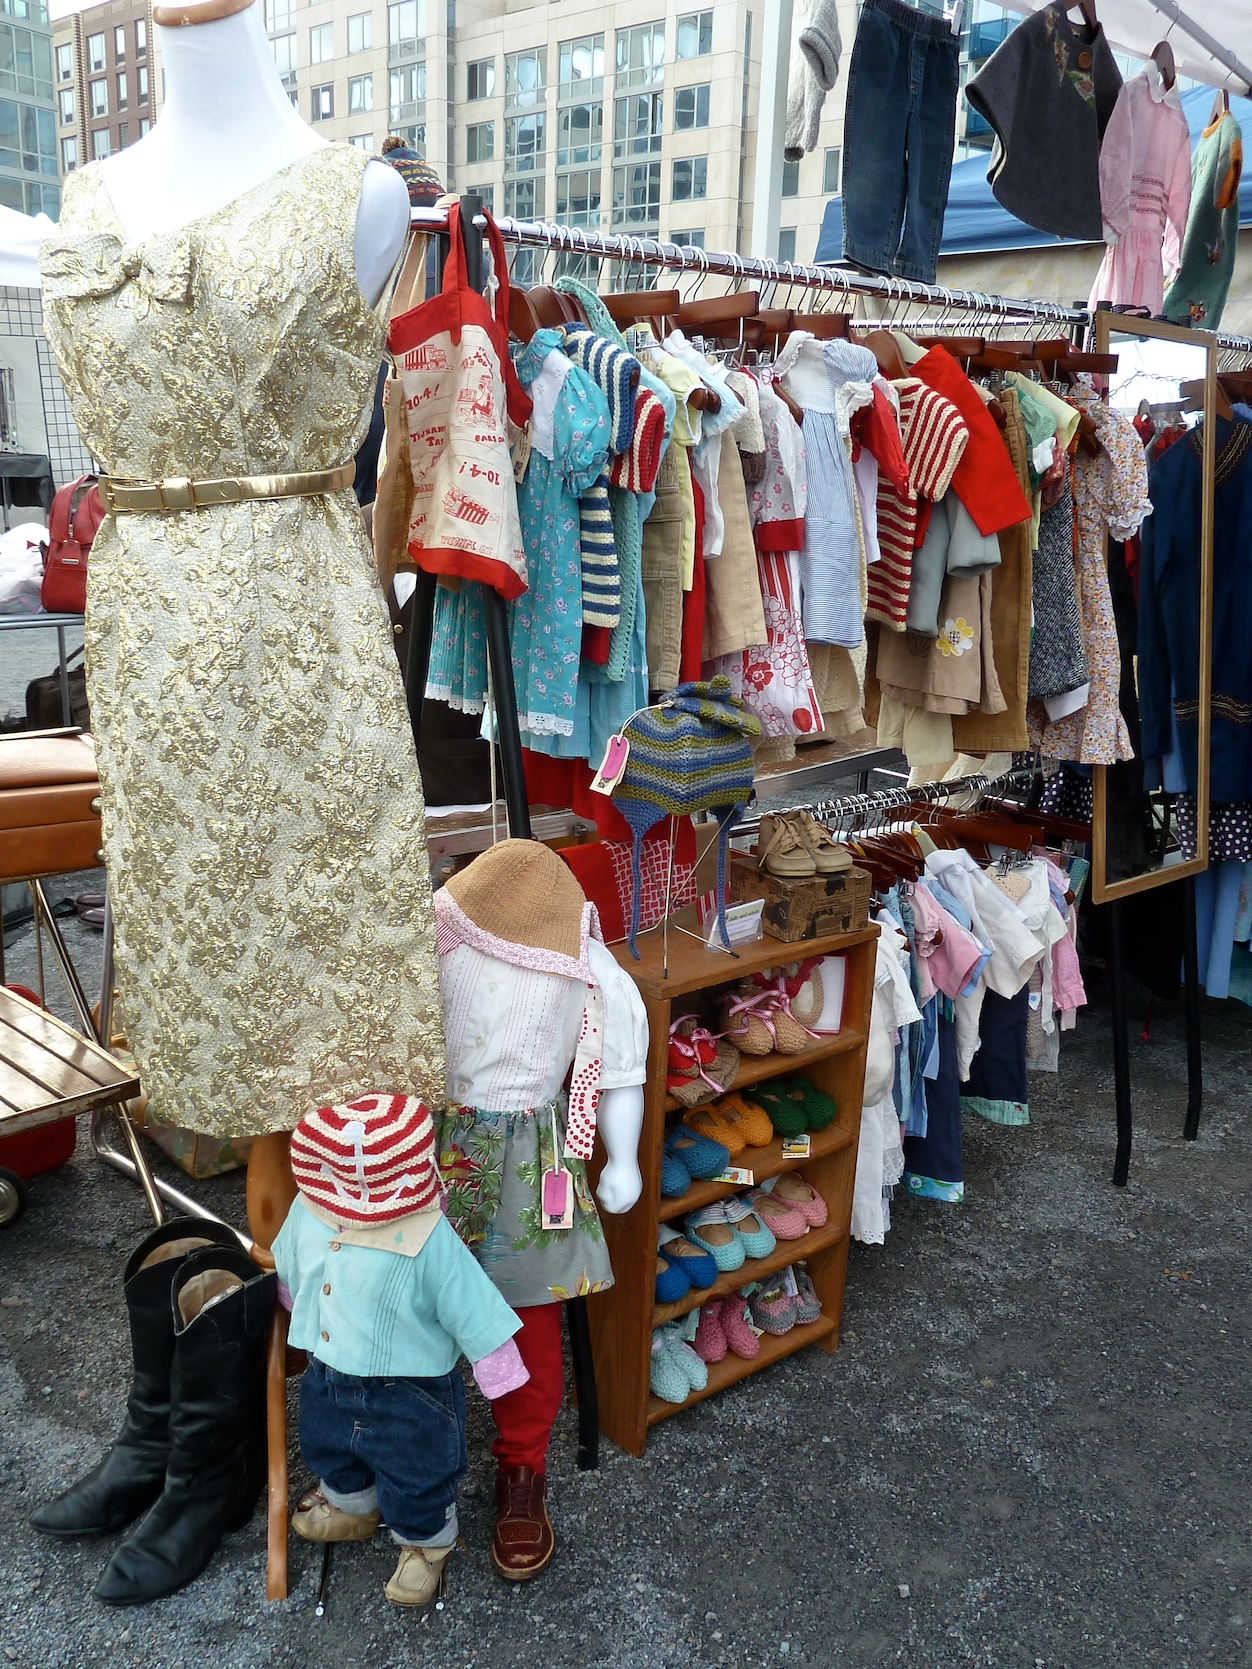 Children's fashion by Dolls and Robots, vintage and remade items at Brooklyn Flea